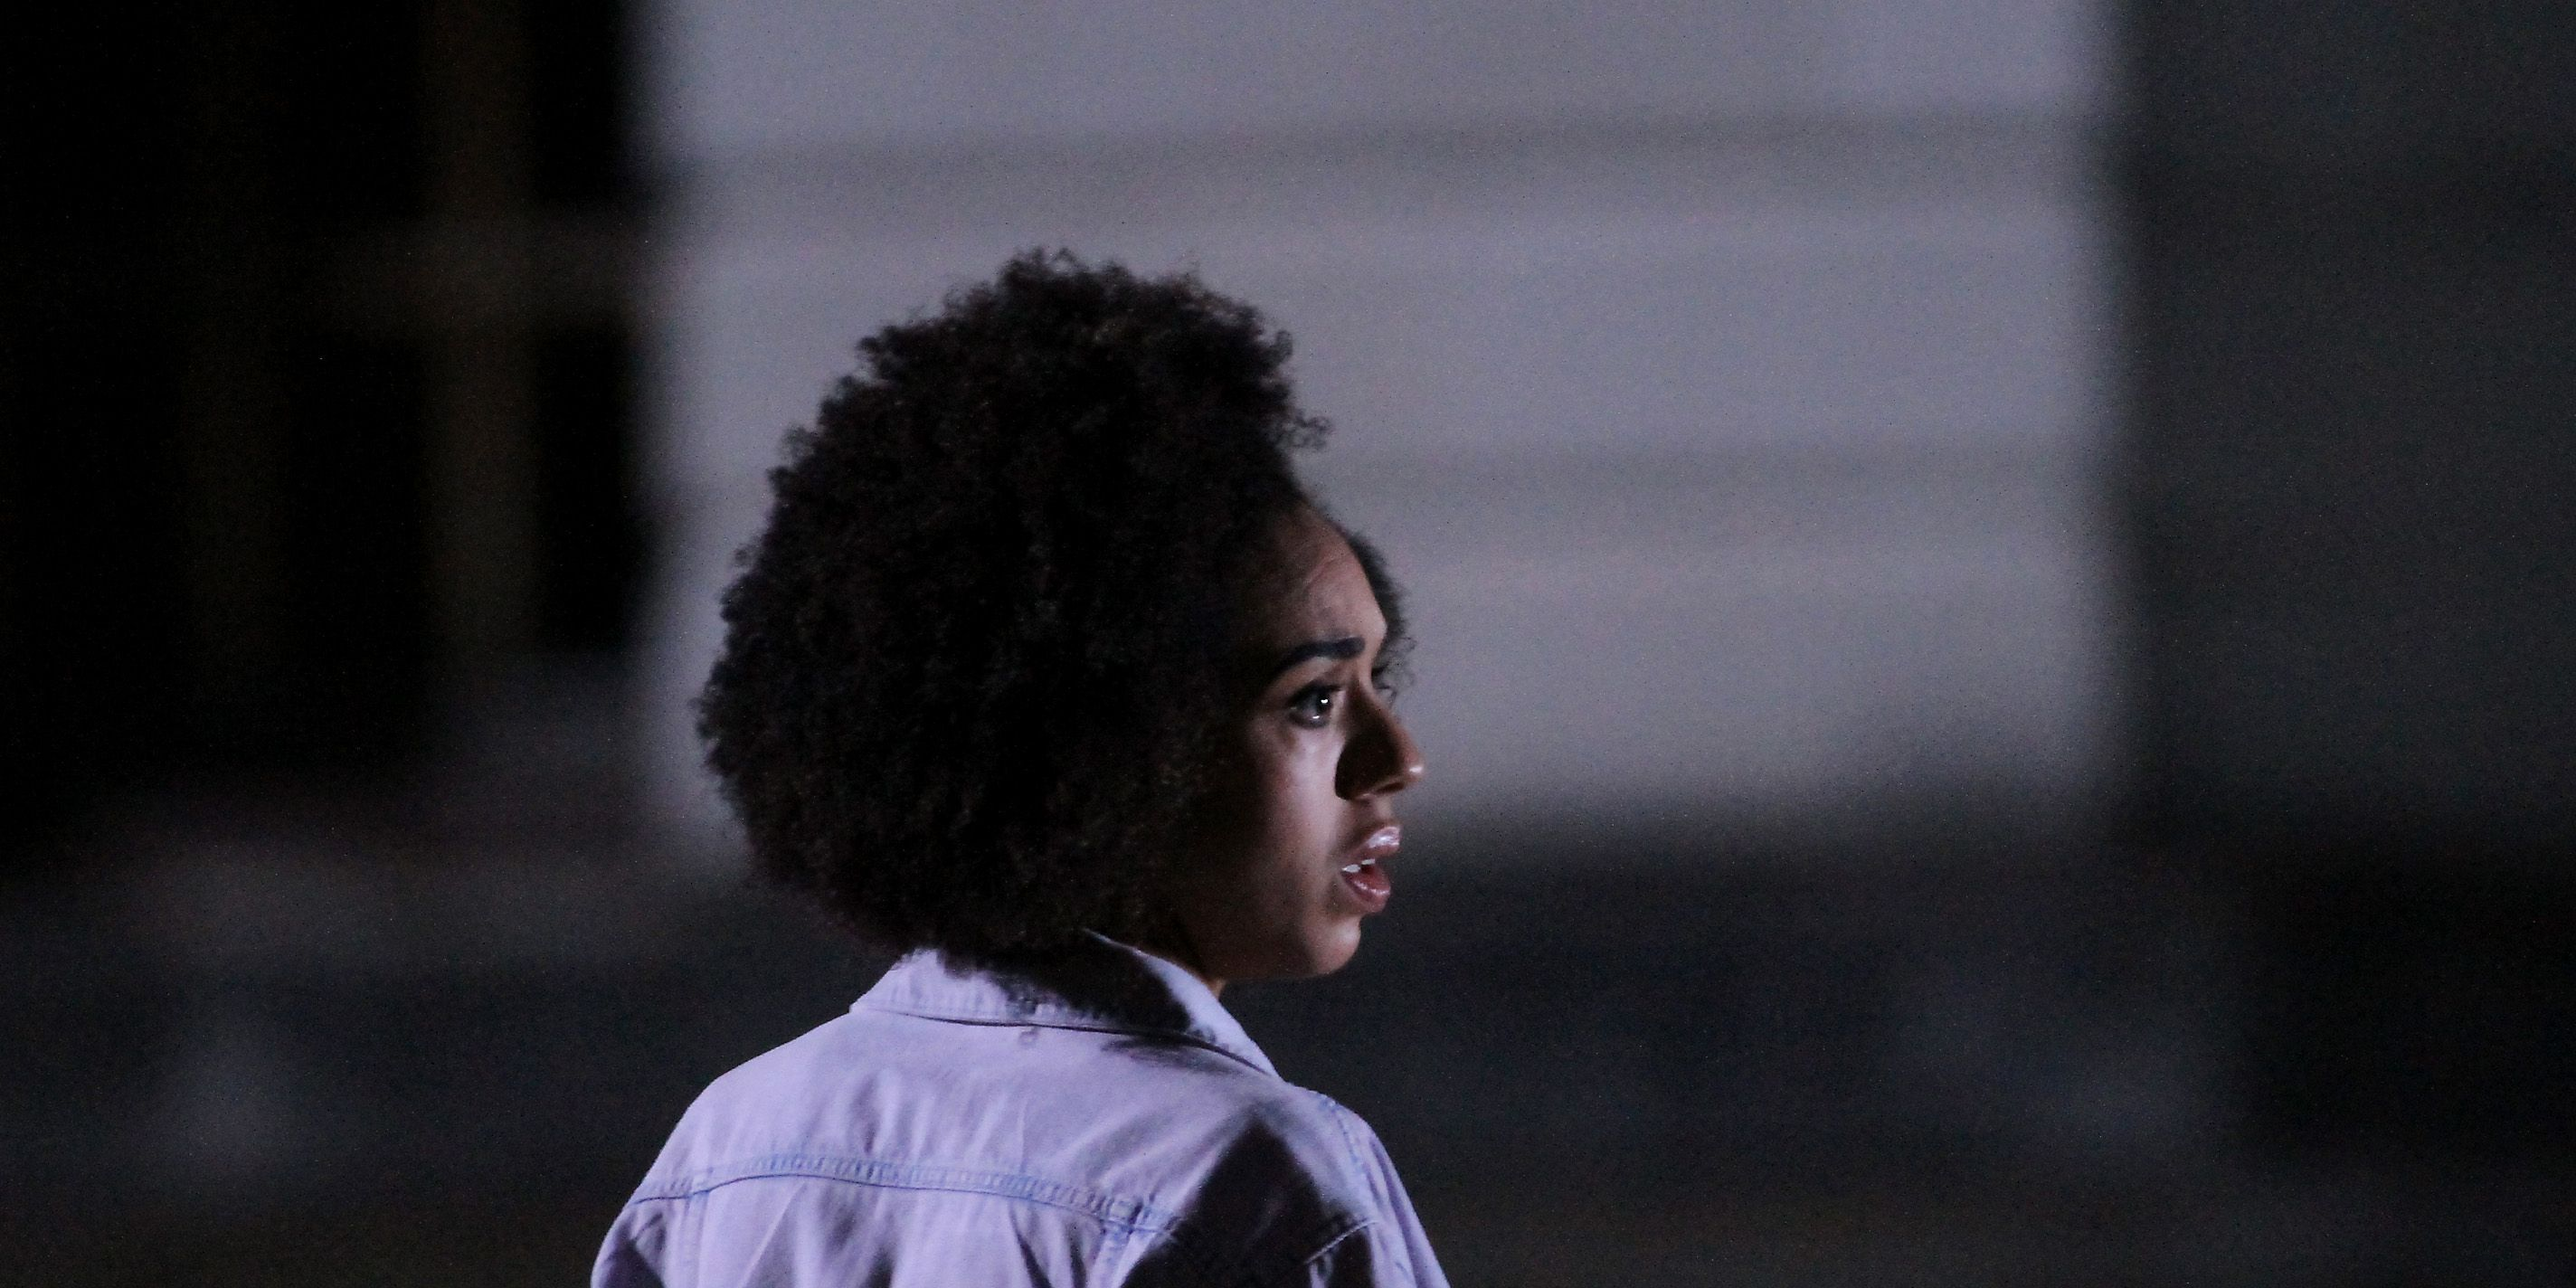 Pearl Mackie, on set Doctor Who, Cardiff, Wales